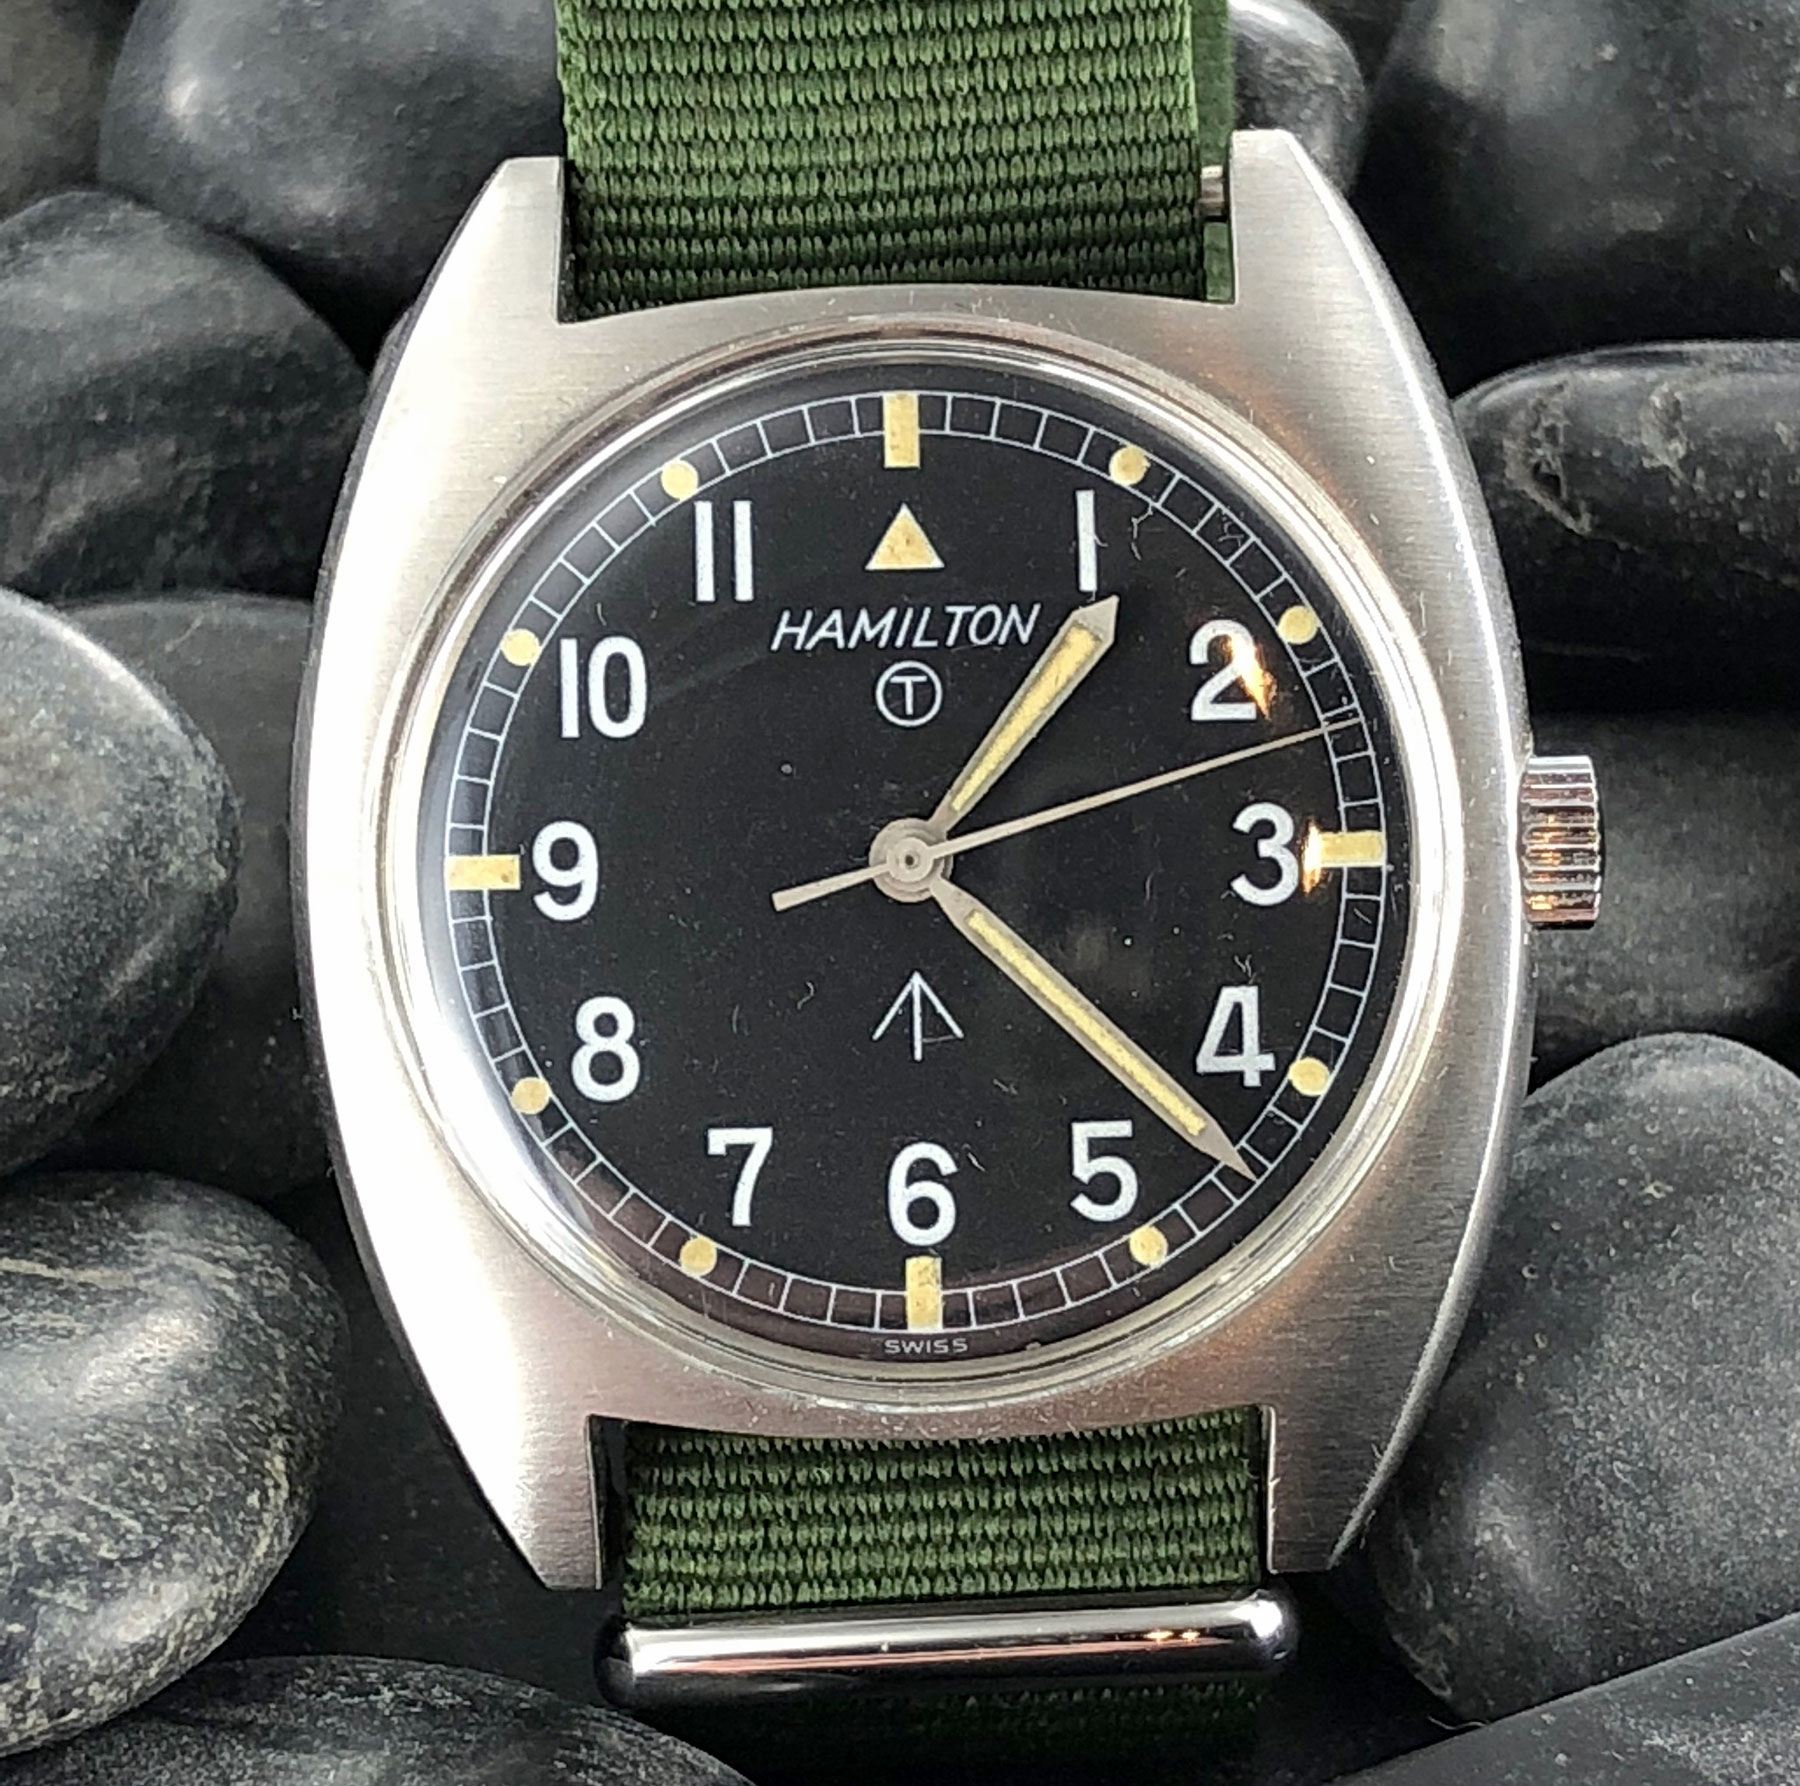 Military Watch Markings - antiqwatch.com